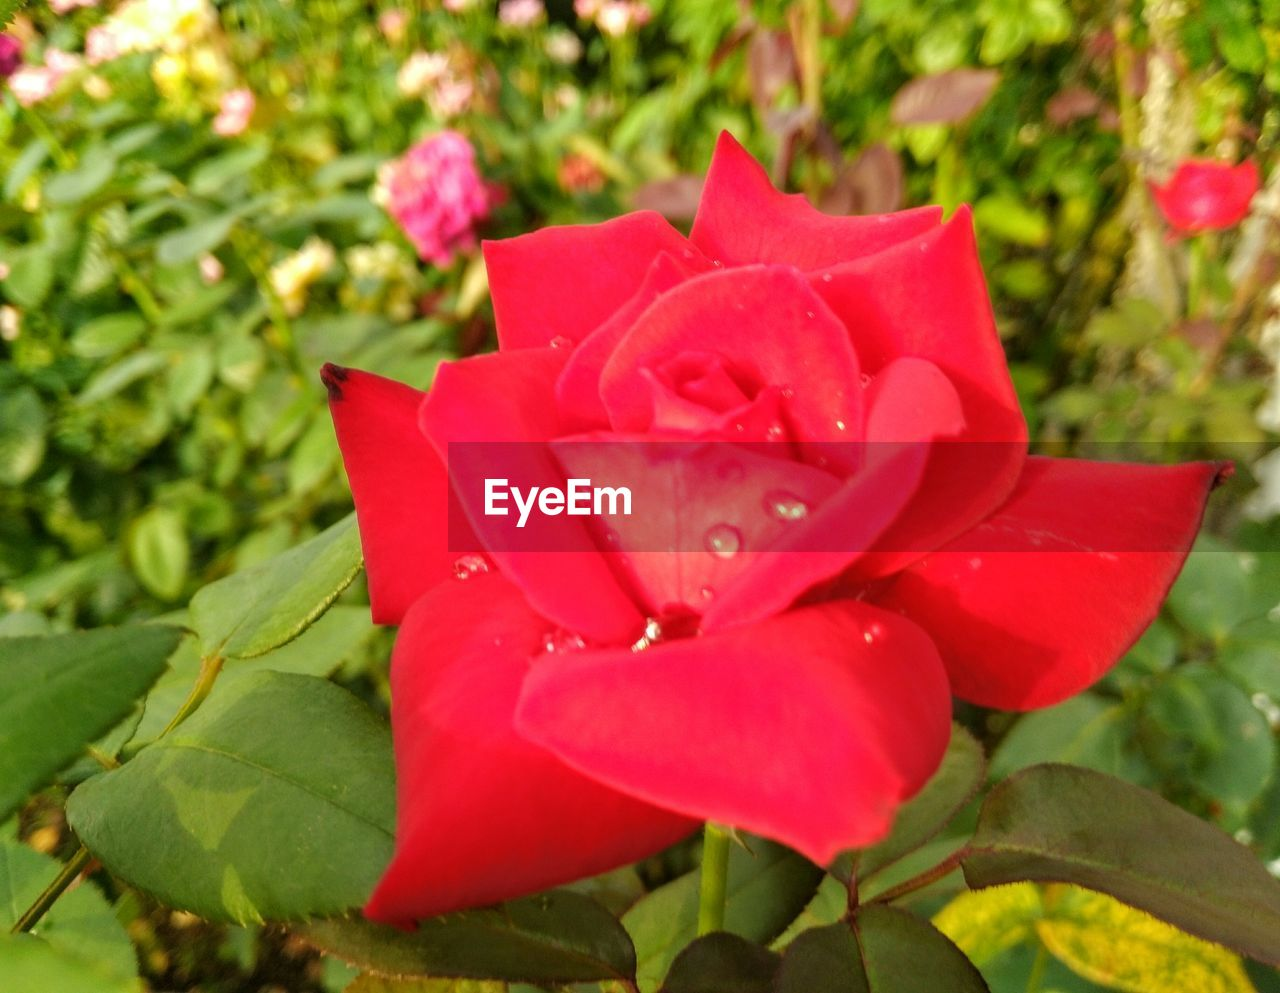 petal, flower, nature, flower head, growth, beauty in nature, plant, fragility, red, no people, drop, rose - flower, freshness, blooming, leaf, day, close-up, outdoors, water, periwinkle